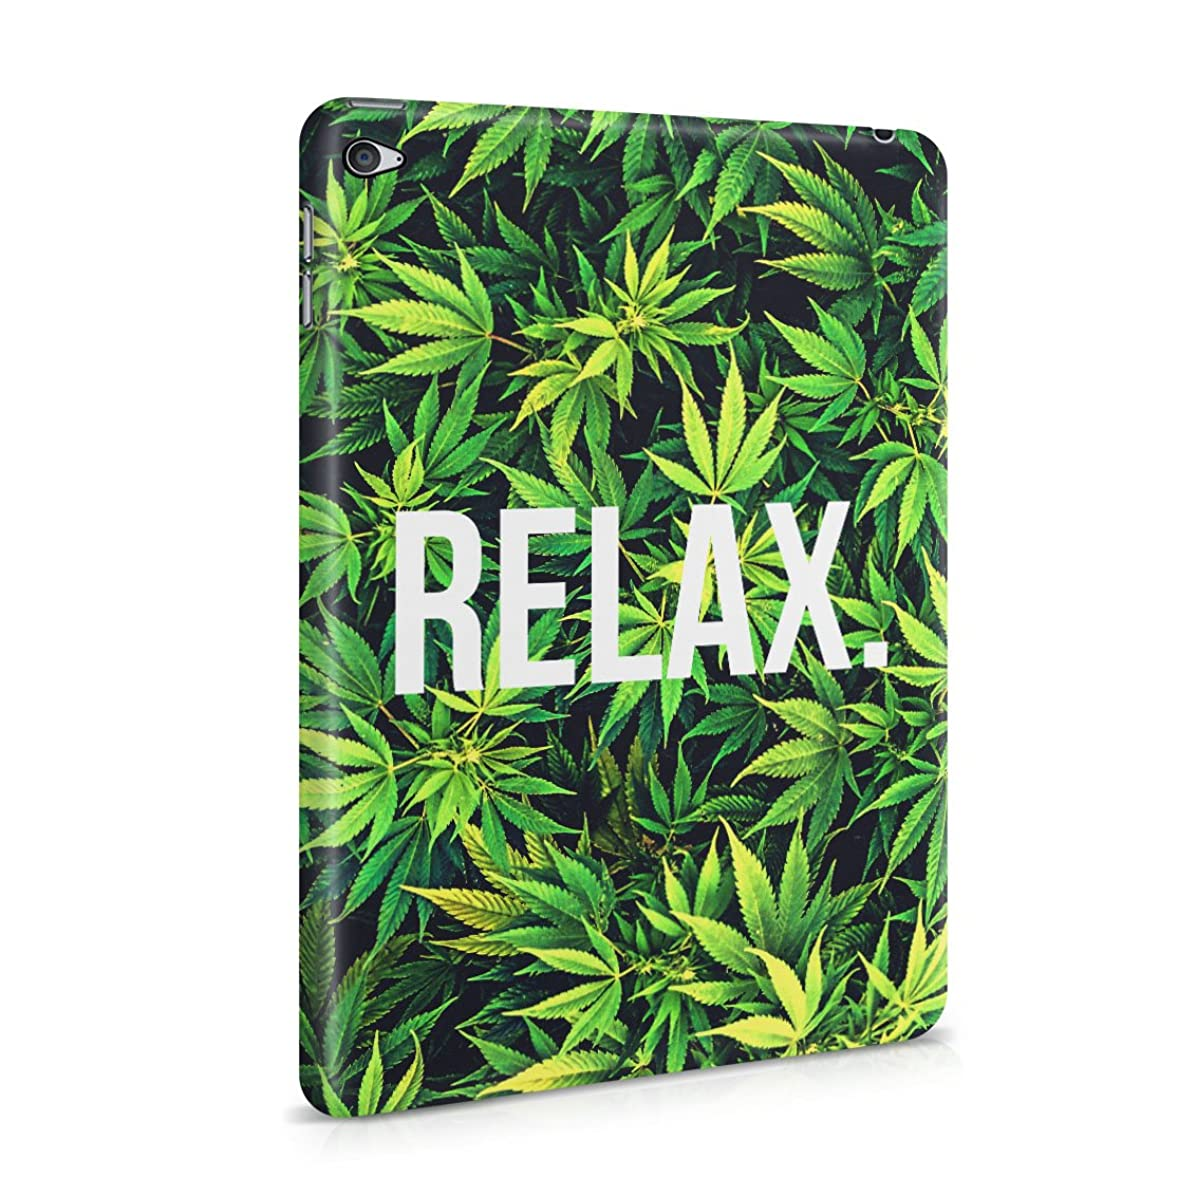 Relax Cannabis Leaves Pattern Plastic Tablet Snap On Back Cover Shell For iPad Mini 4